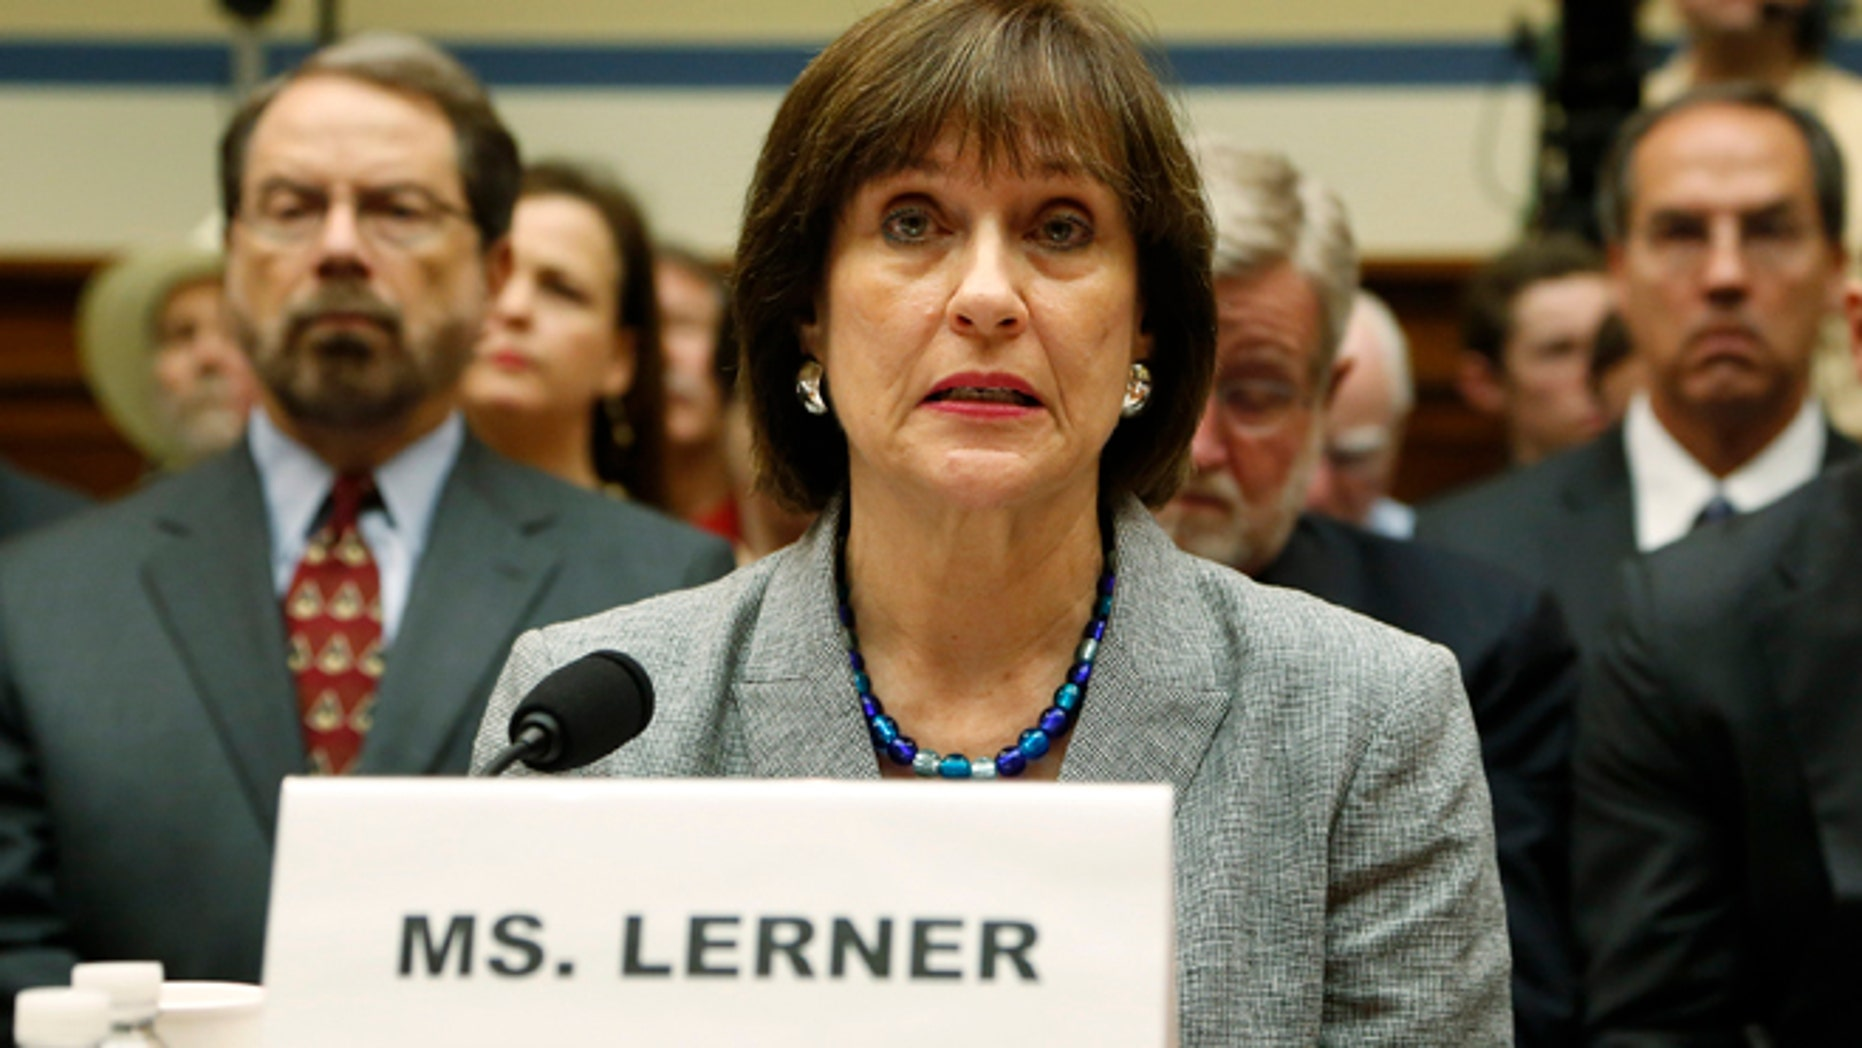 May 22, 2013: Director of Exempt Organizations for the Internal Revenue Service (IRS) Lois Lerner prepares to deliver an opening statement to a House Oversight and Government Reform Committee hearing on alleged targeting of political groups seeking tax-exempt status from by the IRS, on Capitol Hill in Washington